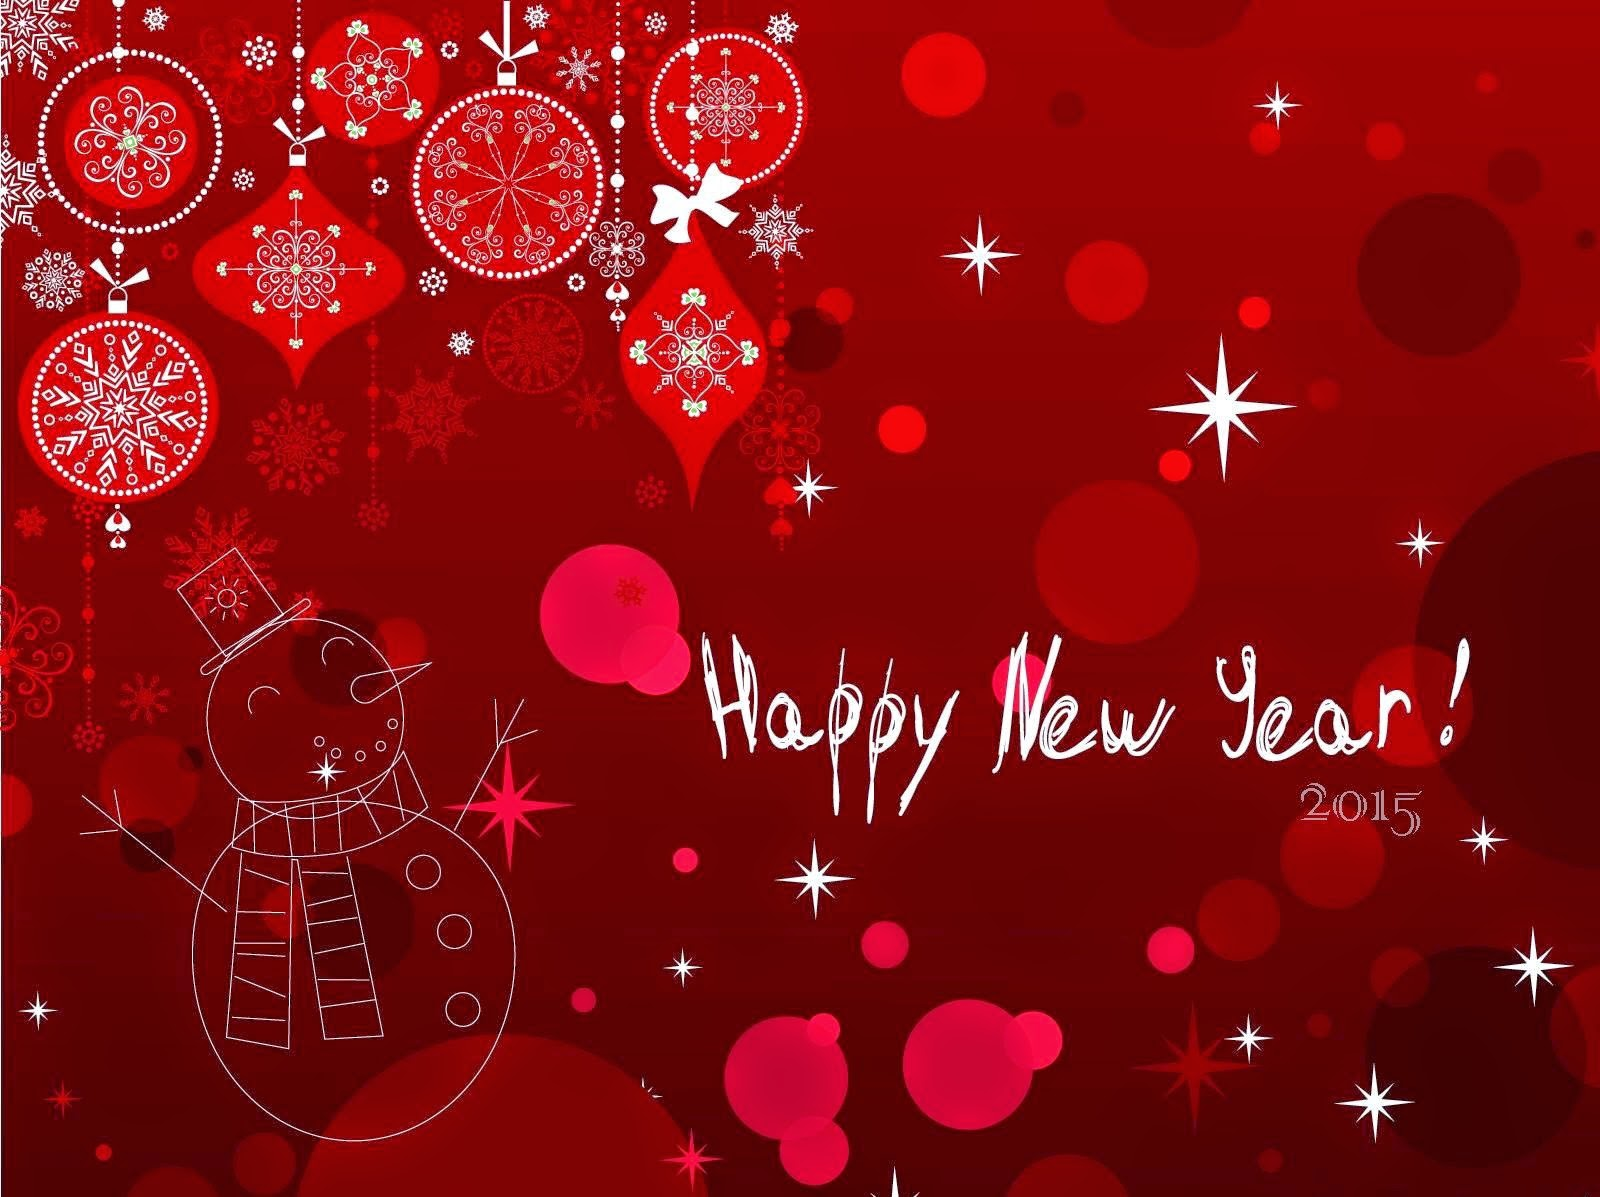 Red Happy New Year Image 2015